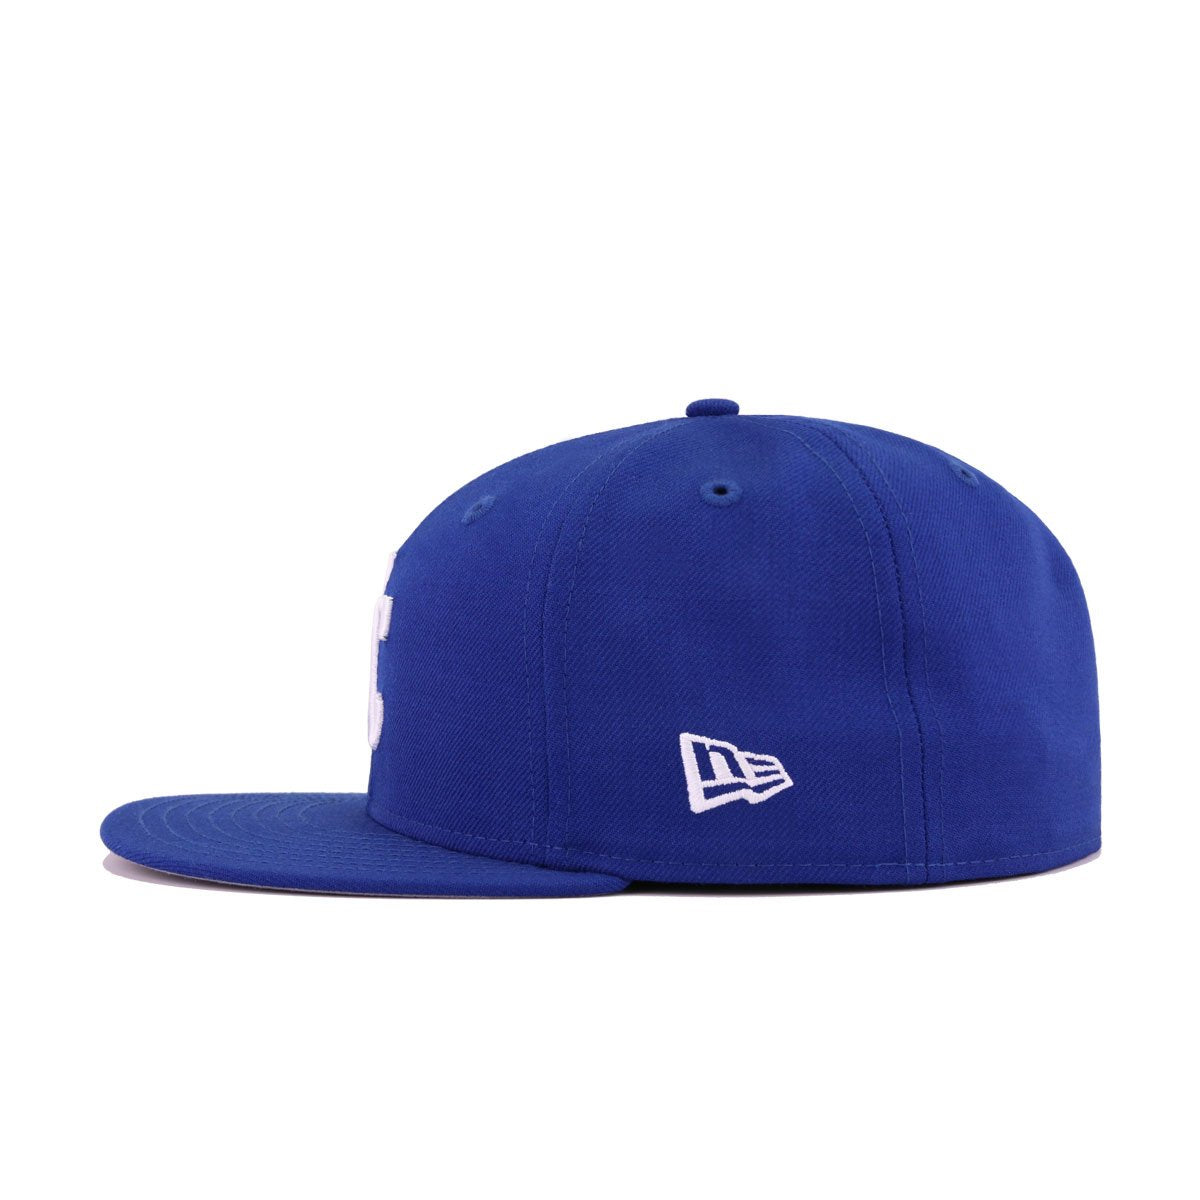 Kansas City Royals Light Royal Blue 2015 World Series New Era 59Fifty Fitted